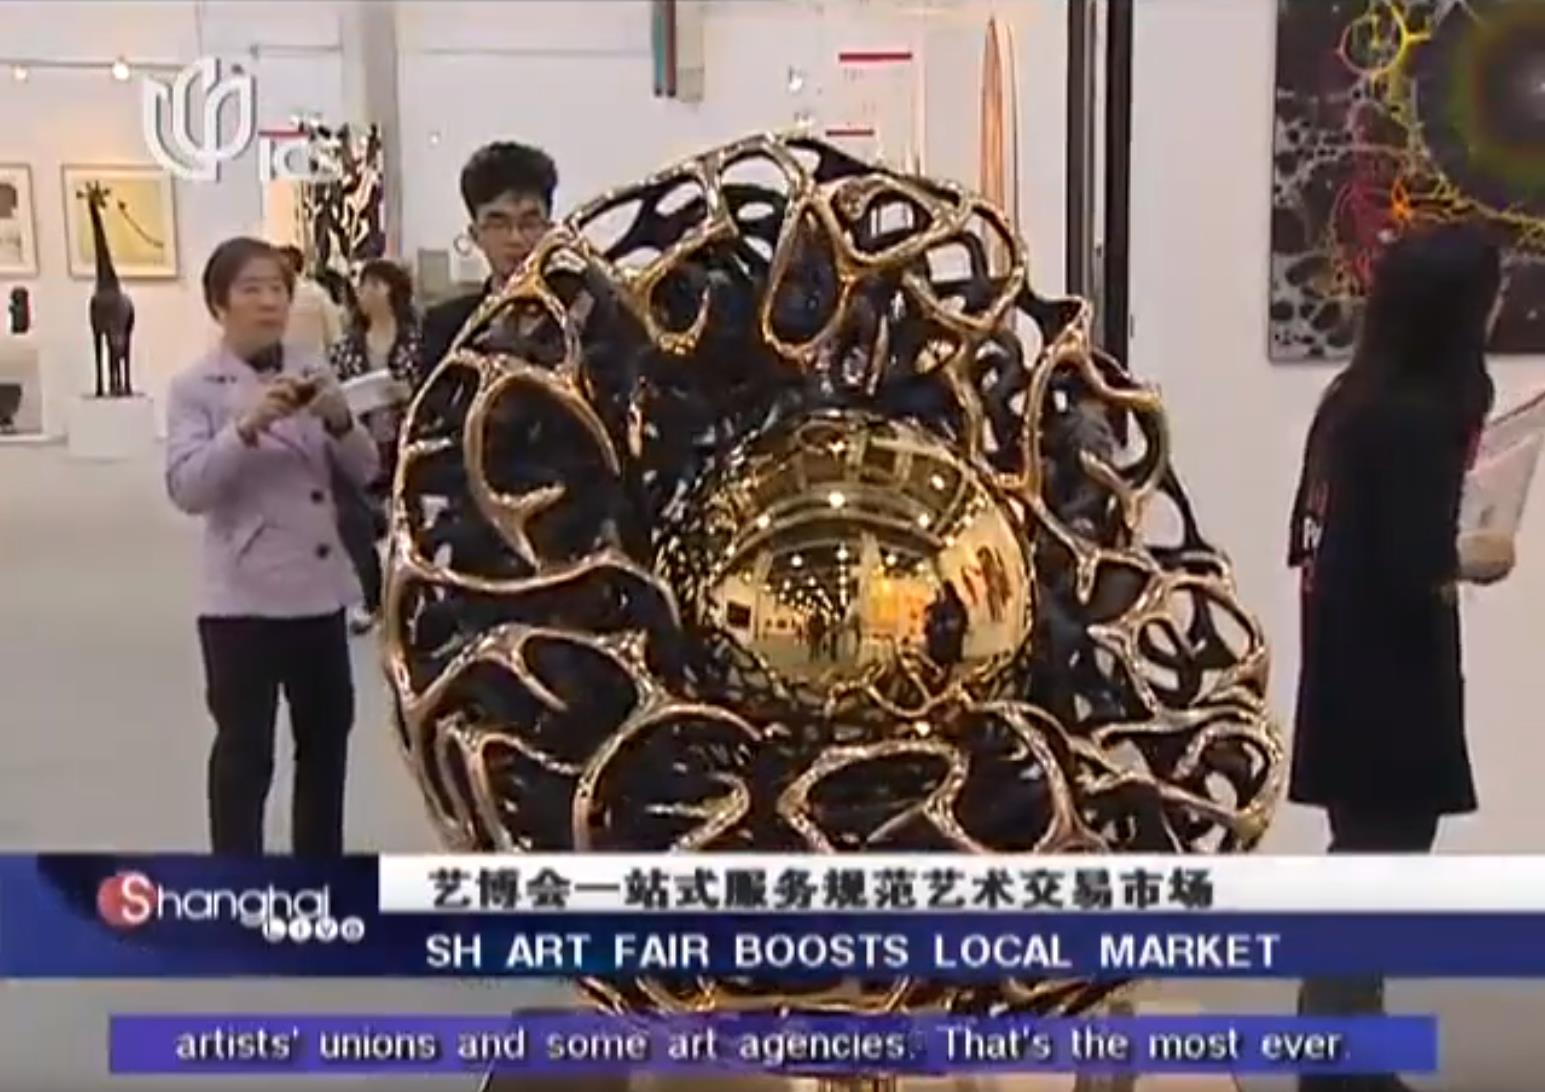 Pashmin Art Gallery in Chinese TV, ICS about Shanghai Art Fair 2012